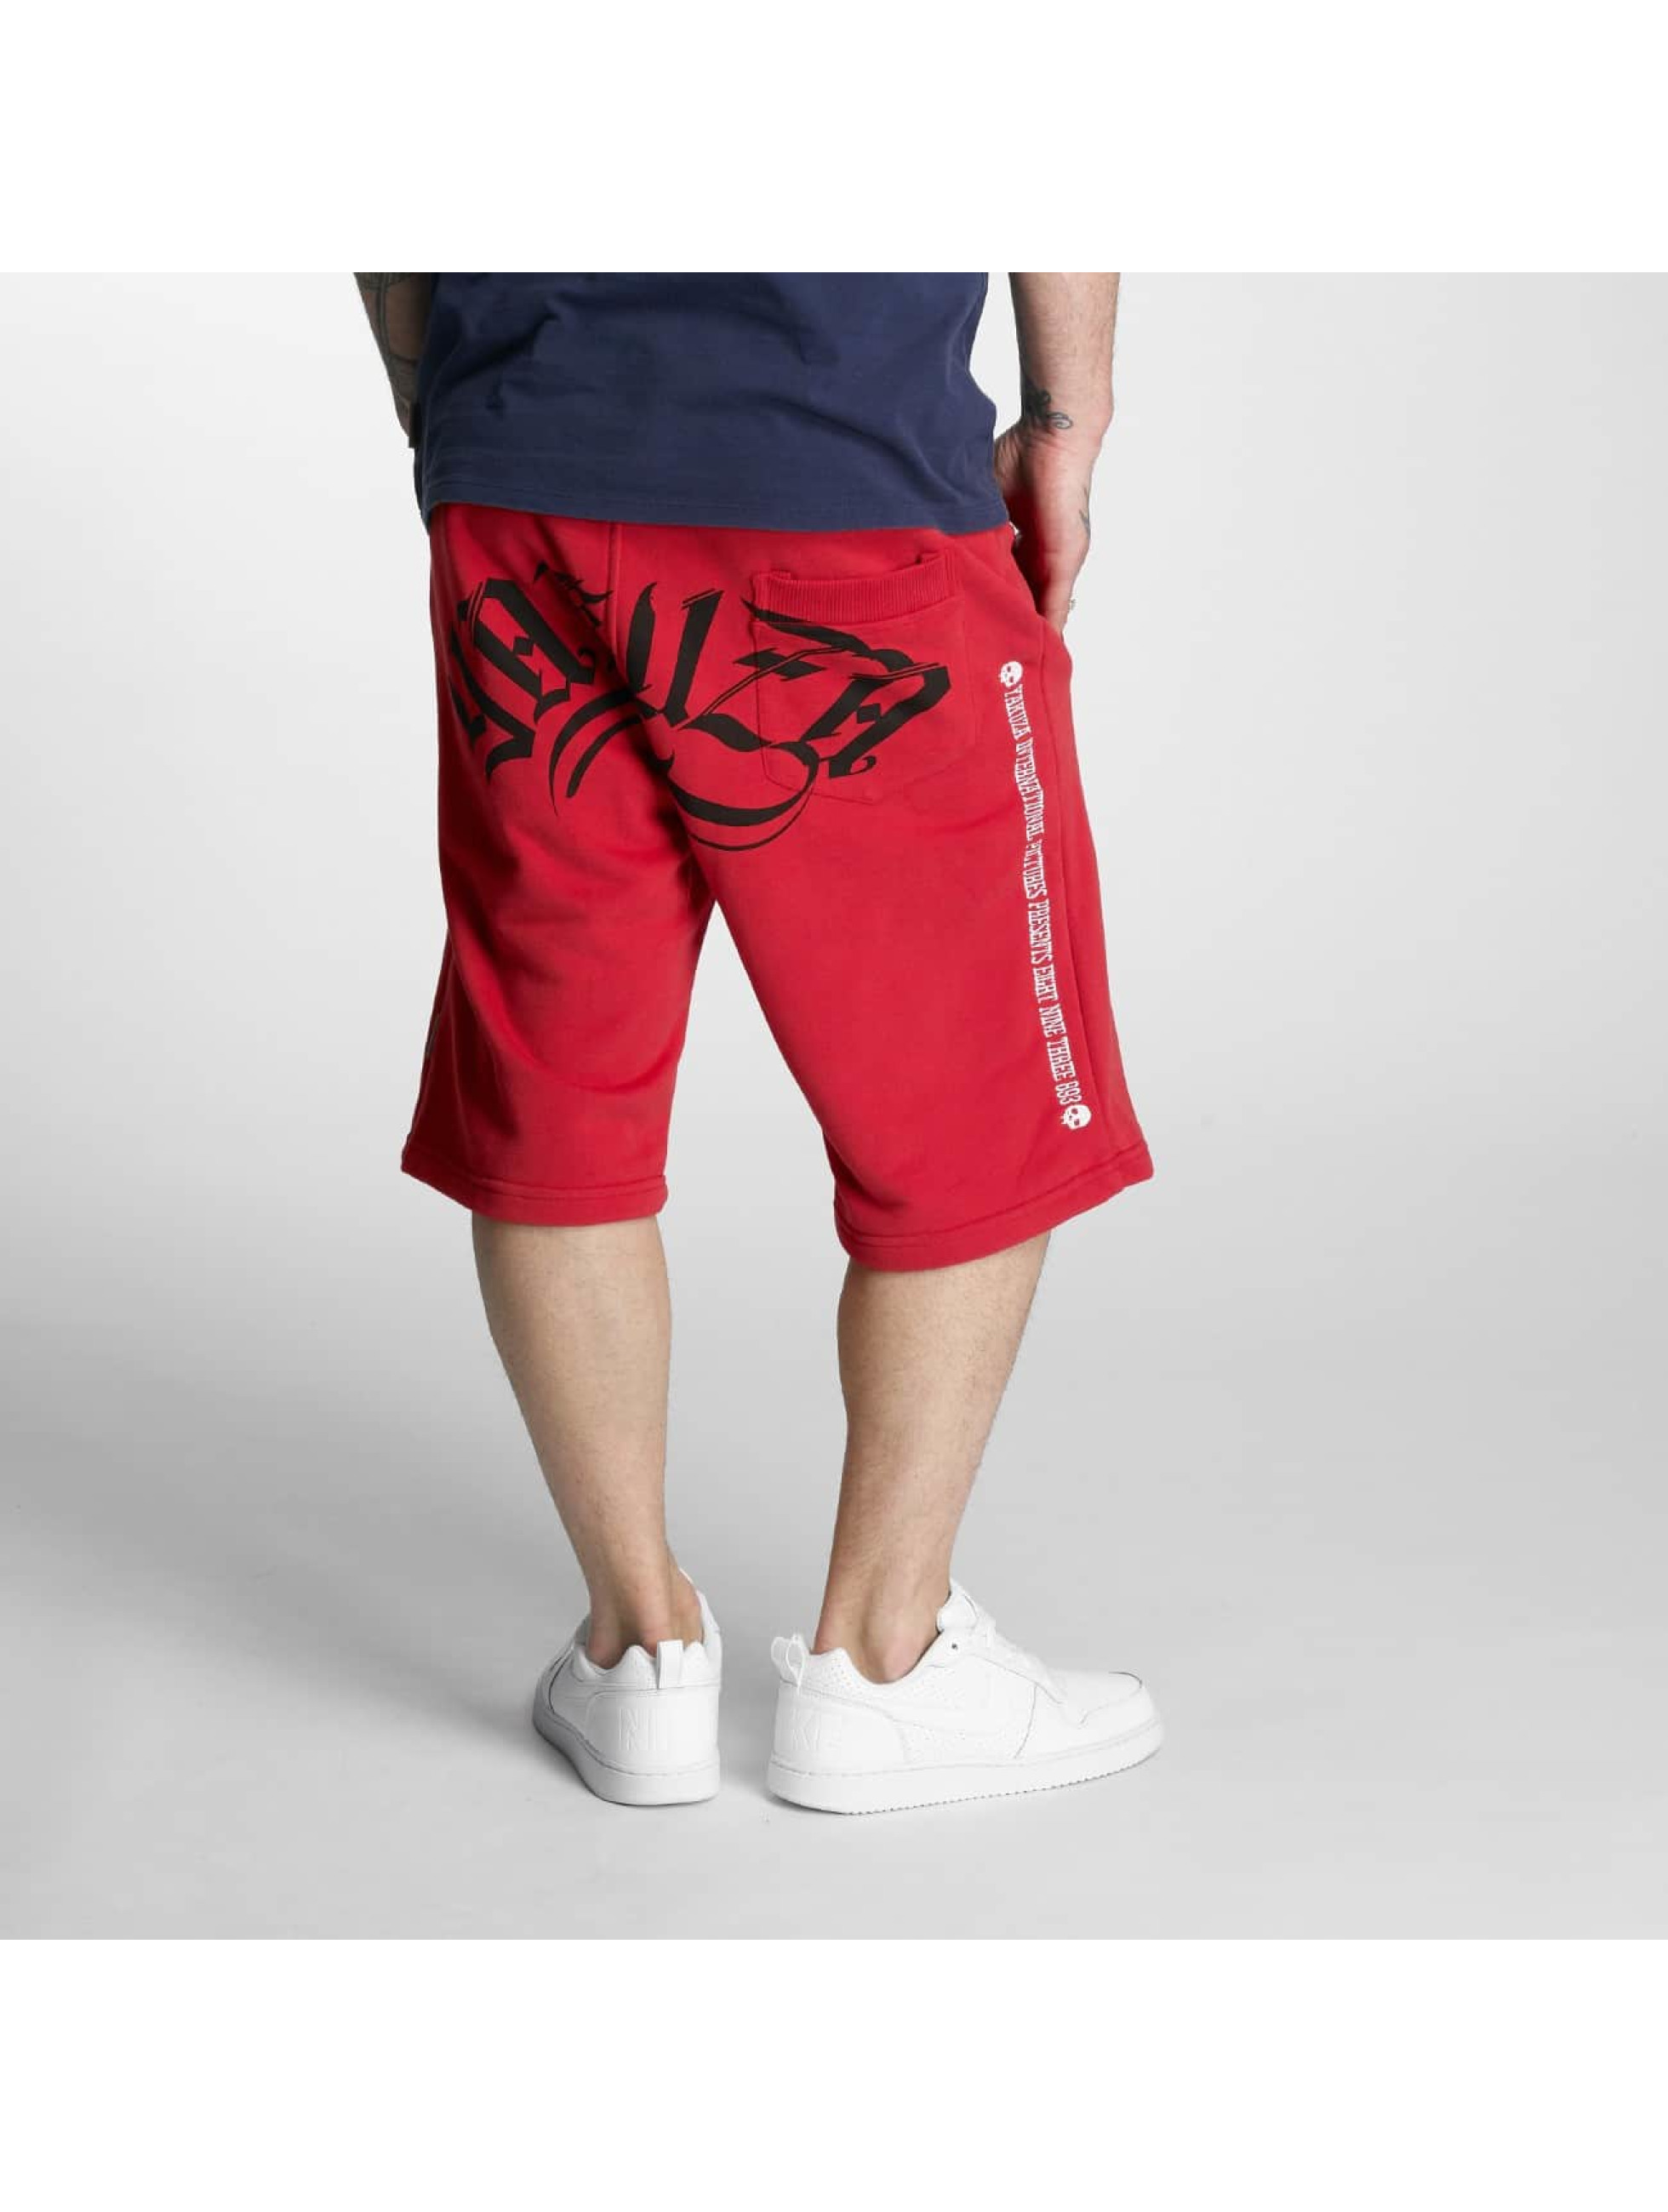 Yakuza Short Armed Society red